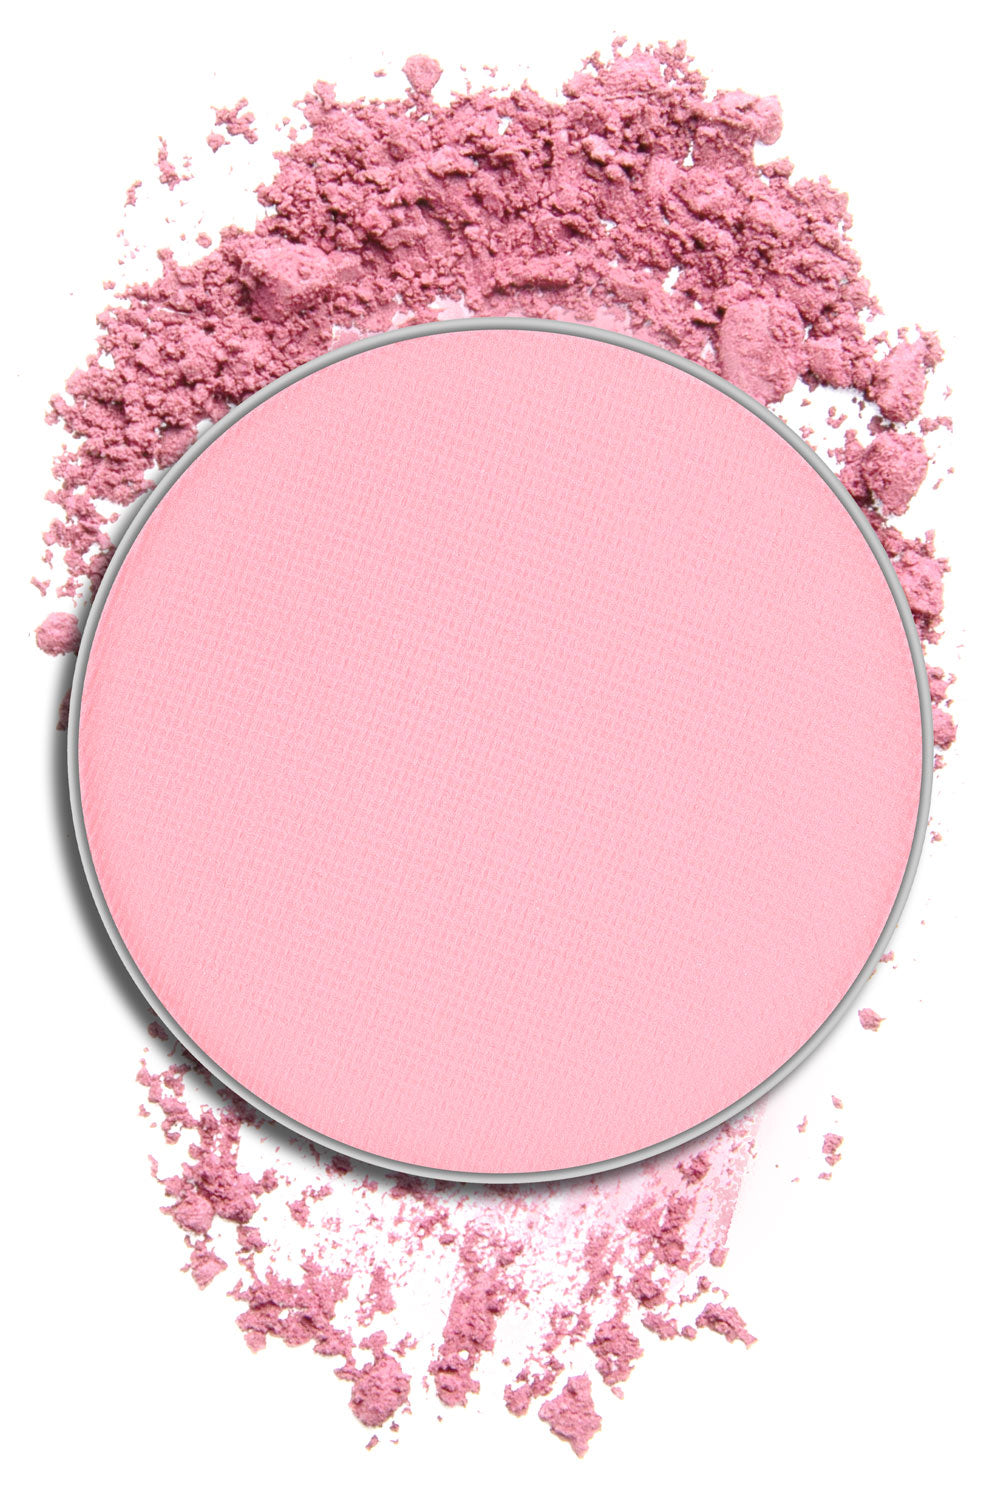 Hush Pink - Blush Pan